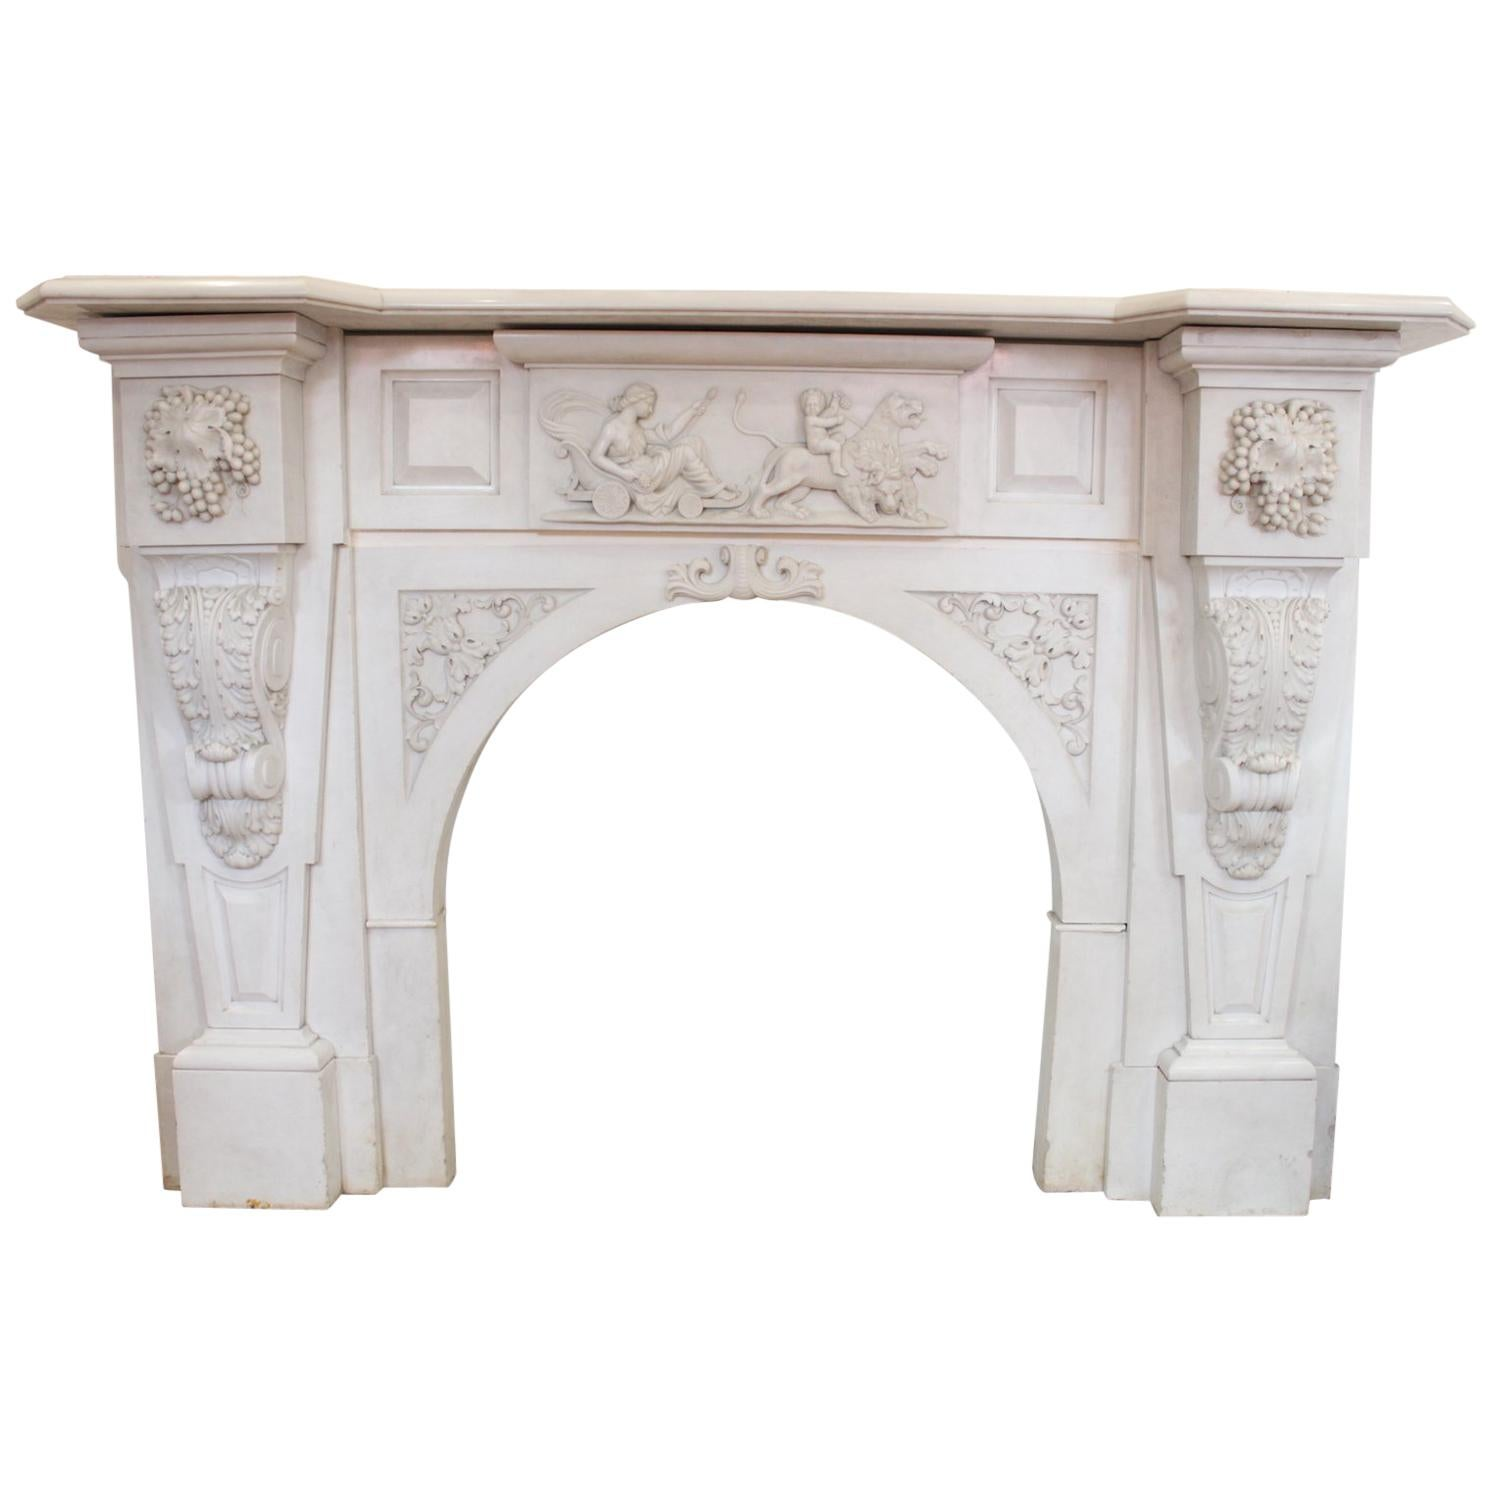 Fireplace Mantel Parts Carrara Marble Fireplace Mantel